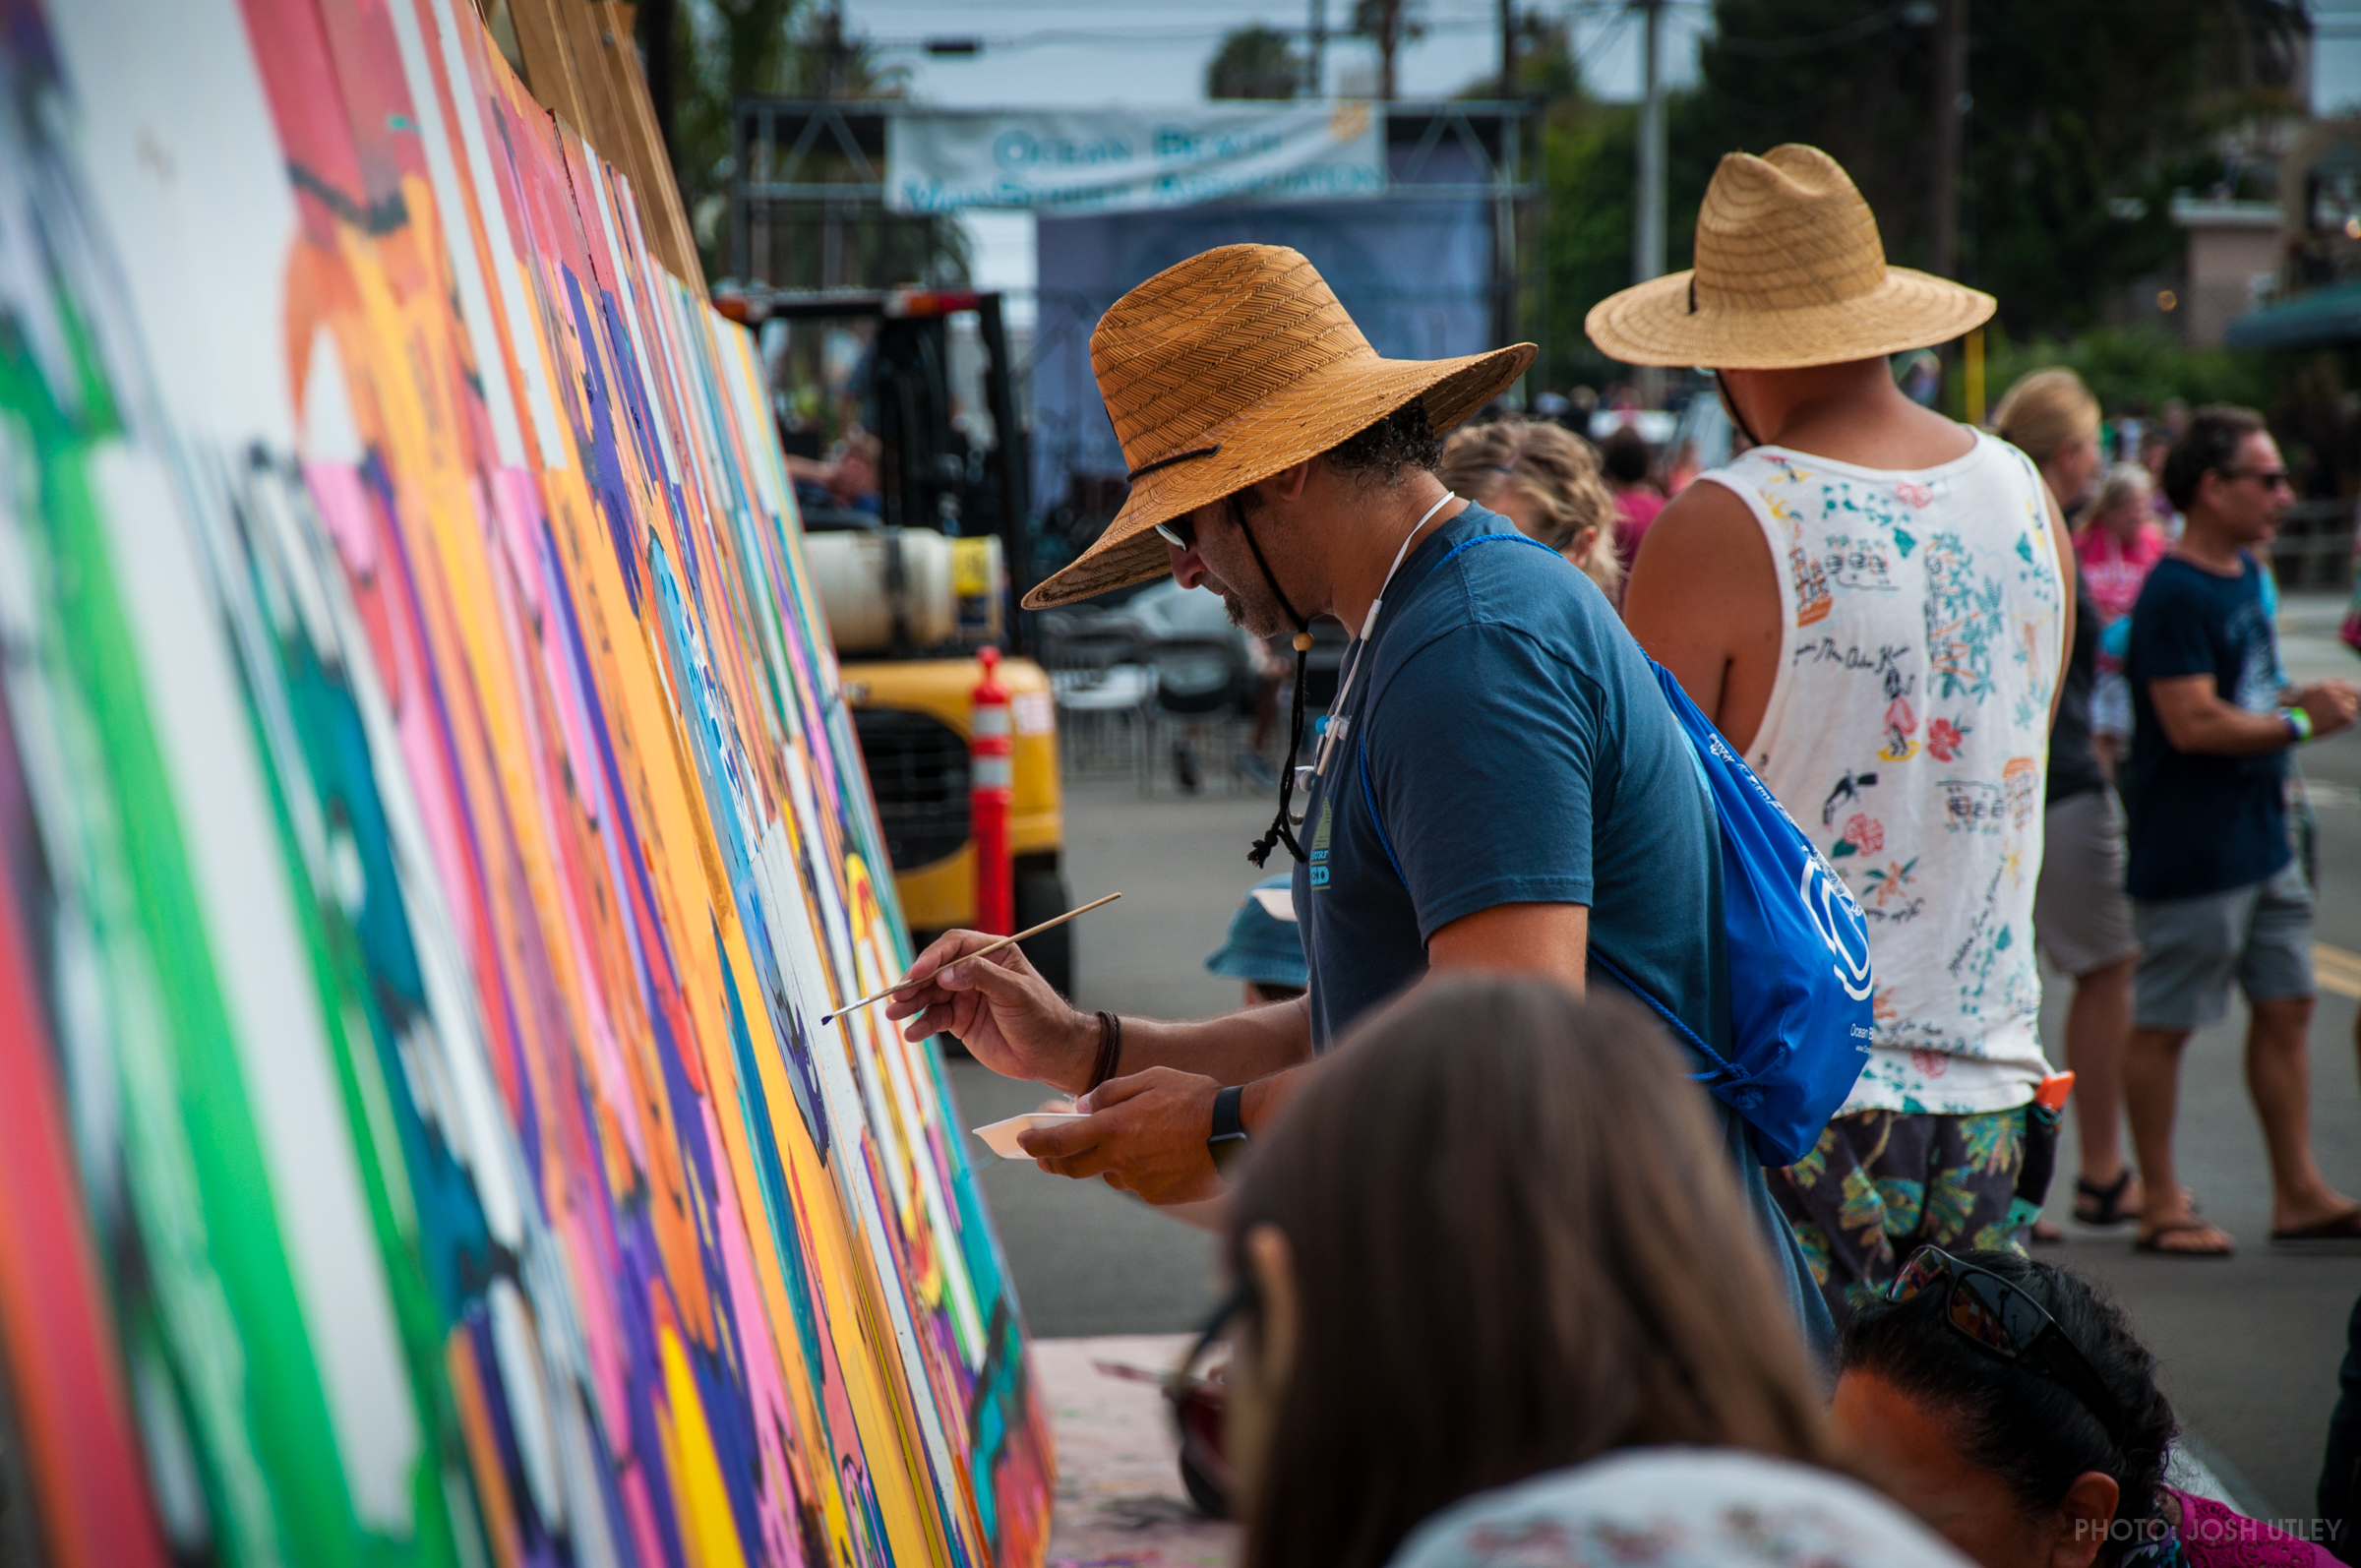 Community Invited to Help Create Giant Ocean Beach Murals - Times of ...